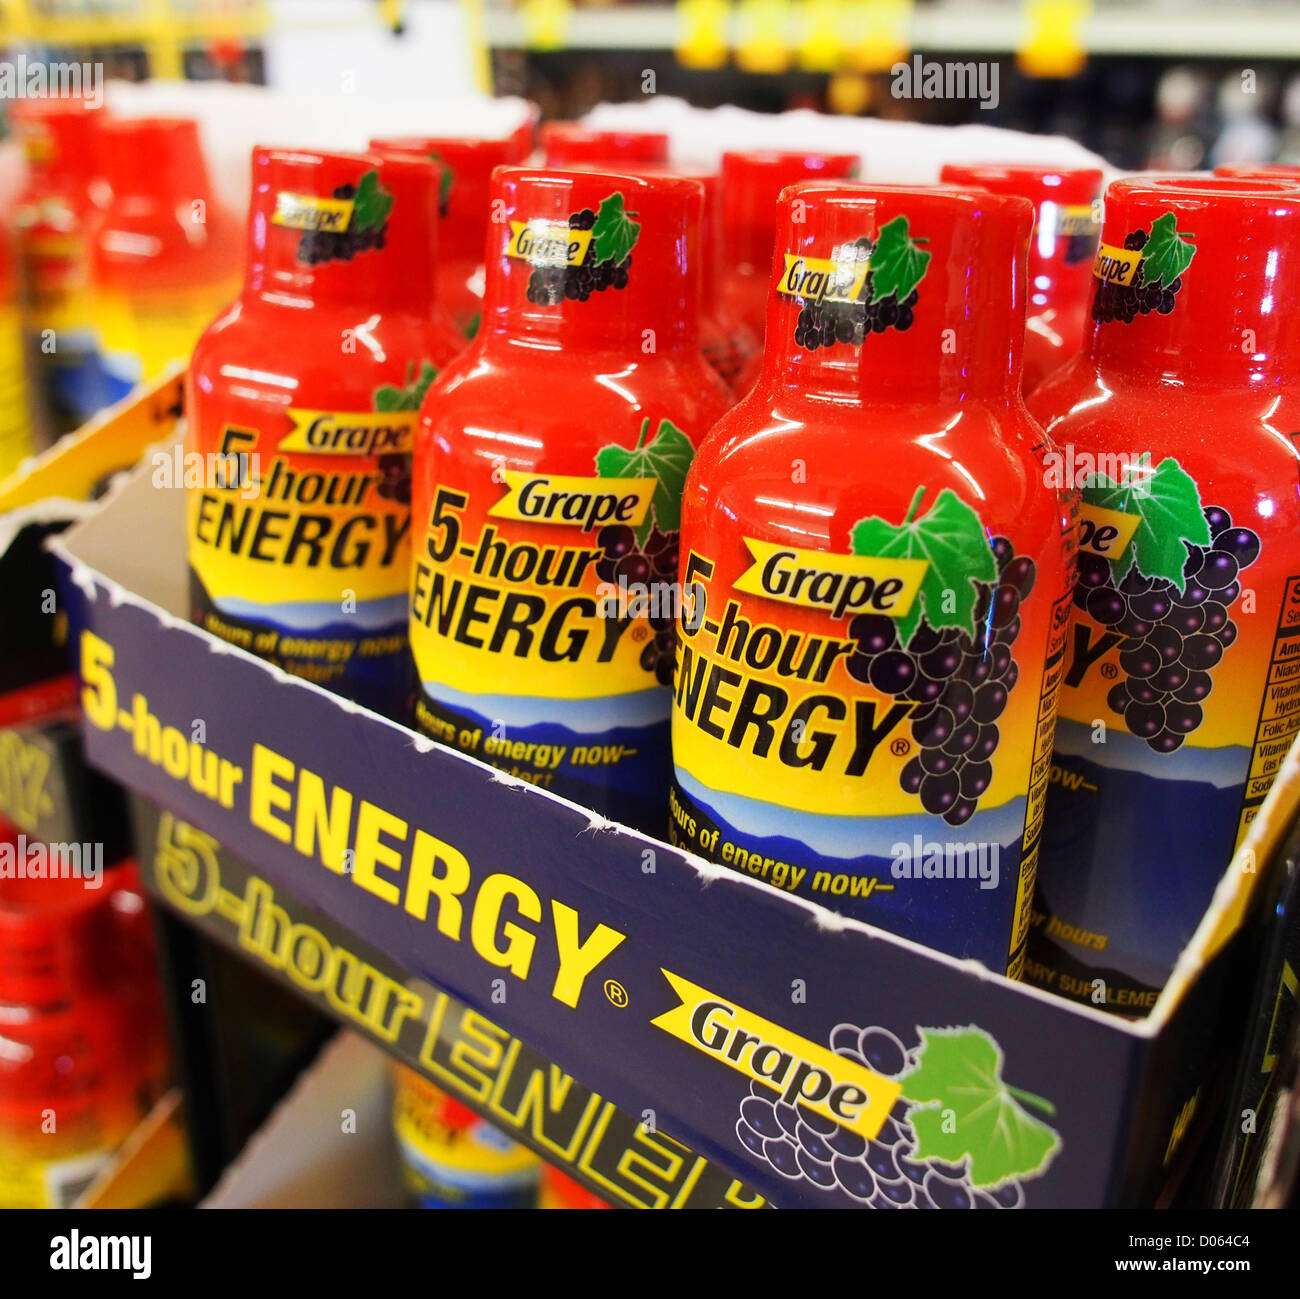 Jan. 1, 2012 - Orange County, California, USA - 5-Hour Energy drinks come in several flavors including orange, cherry Stock Photo